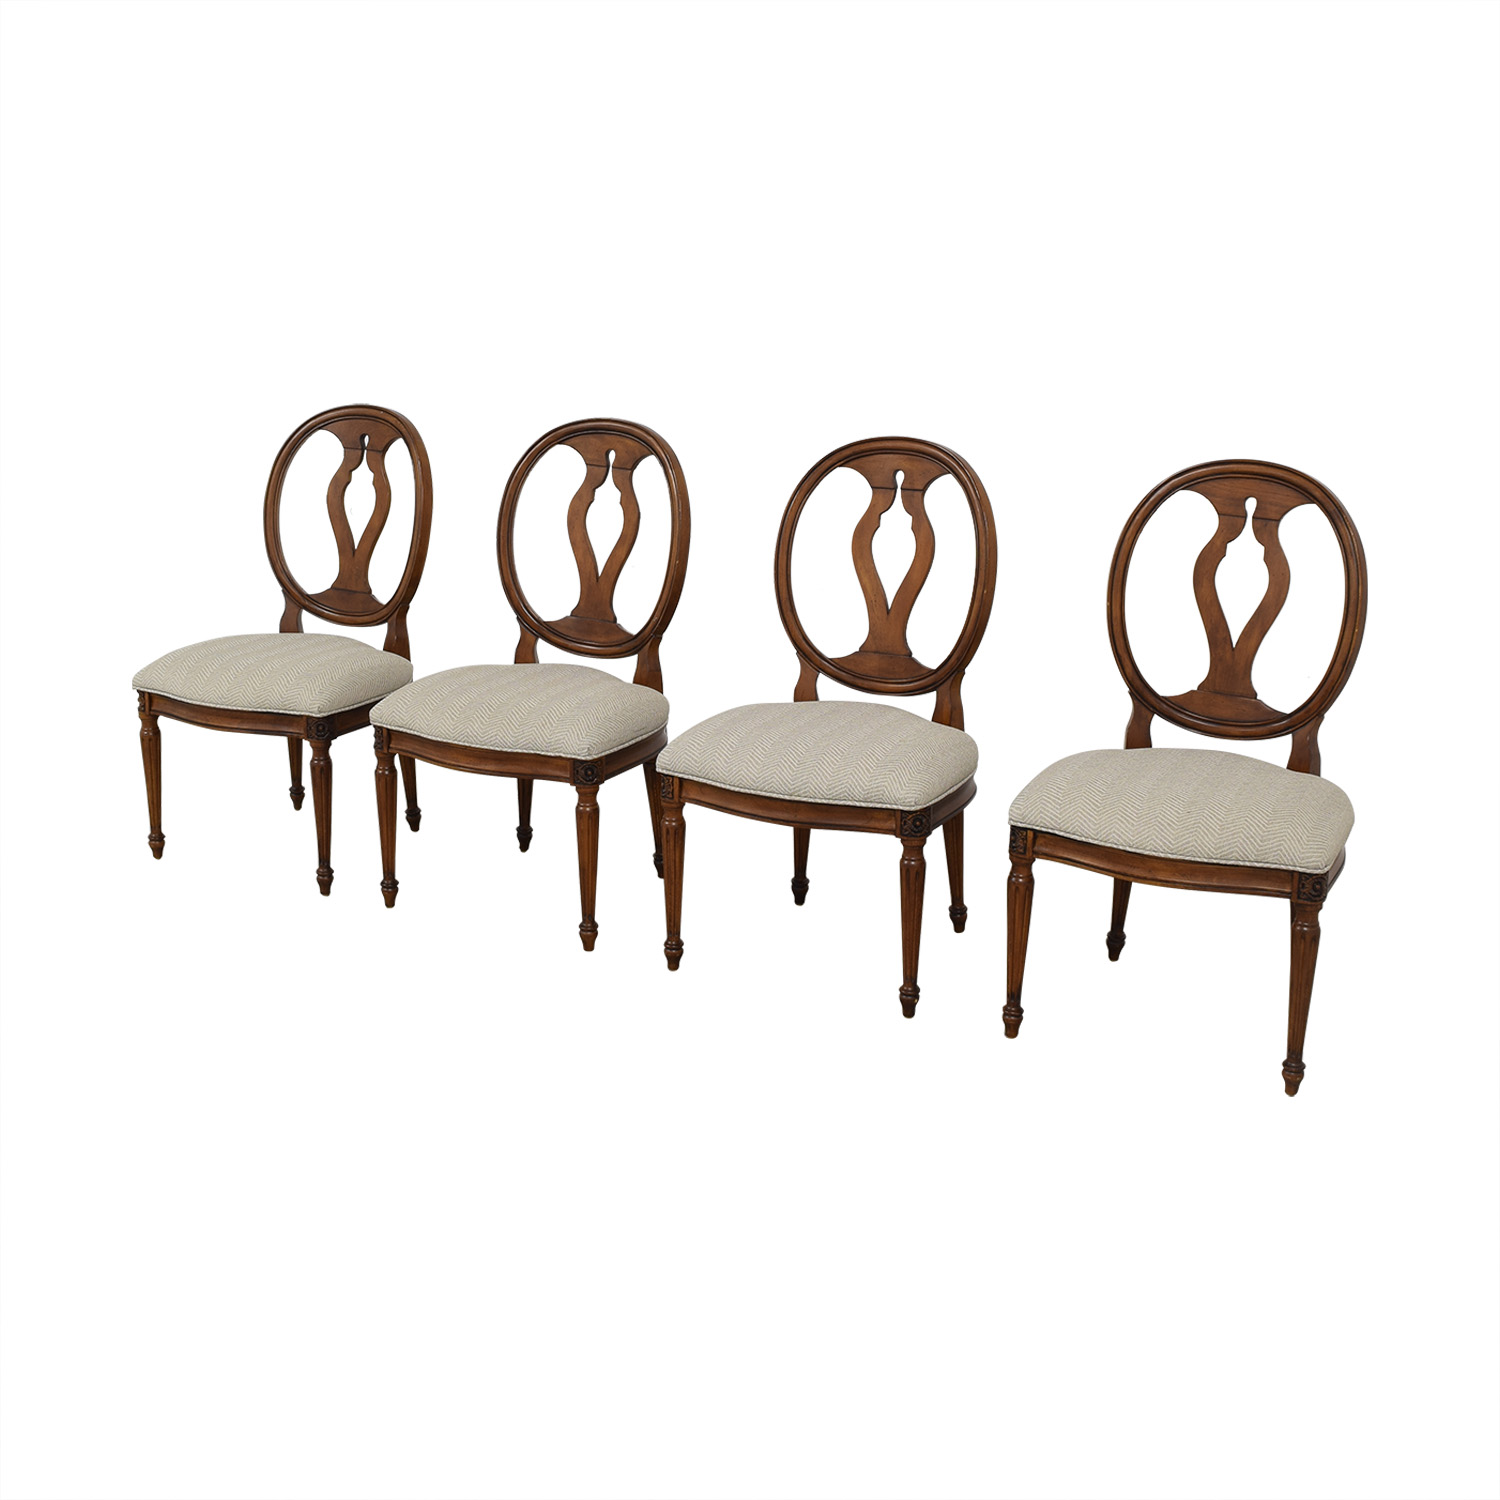 Ethan Allen Ethan Allen Margaux Dining Chairs Chairs